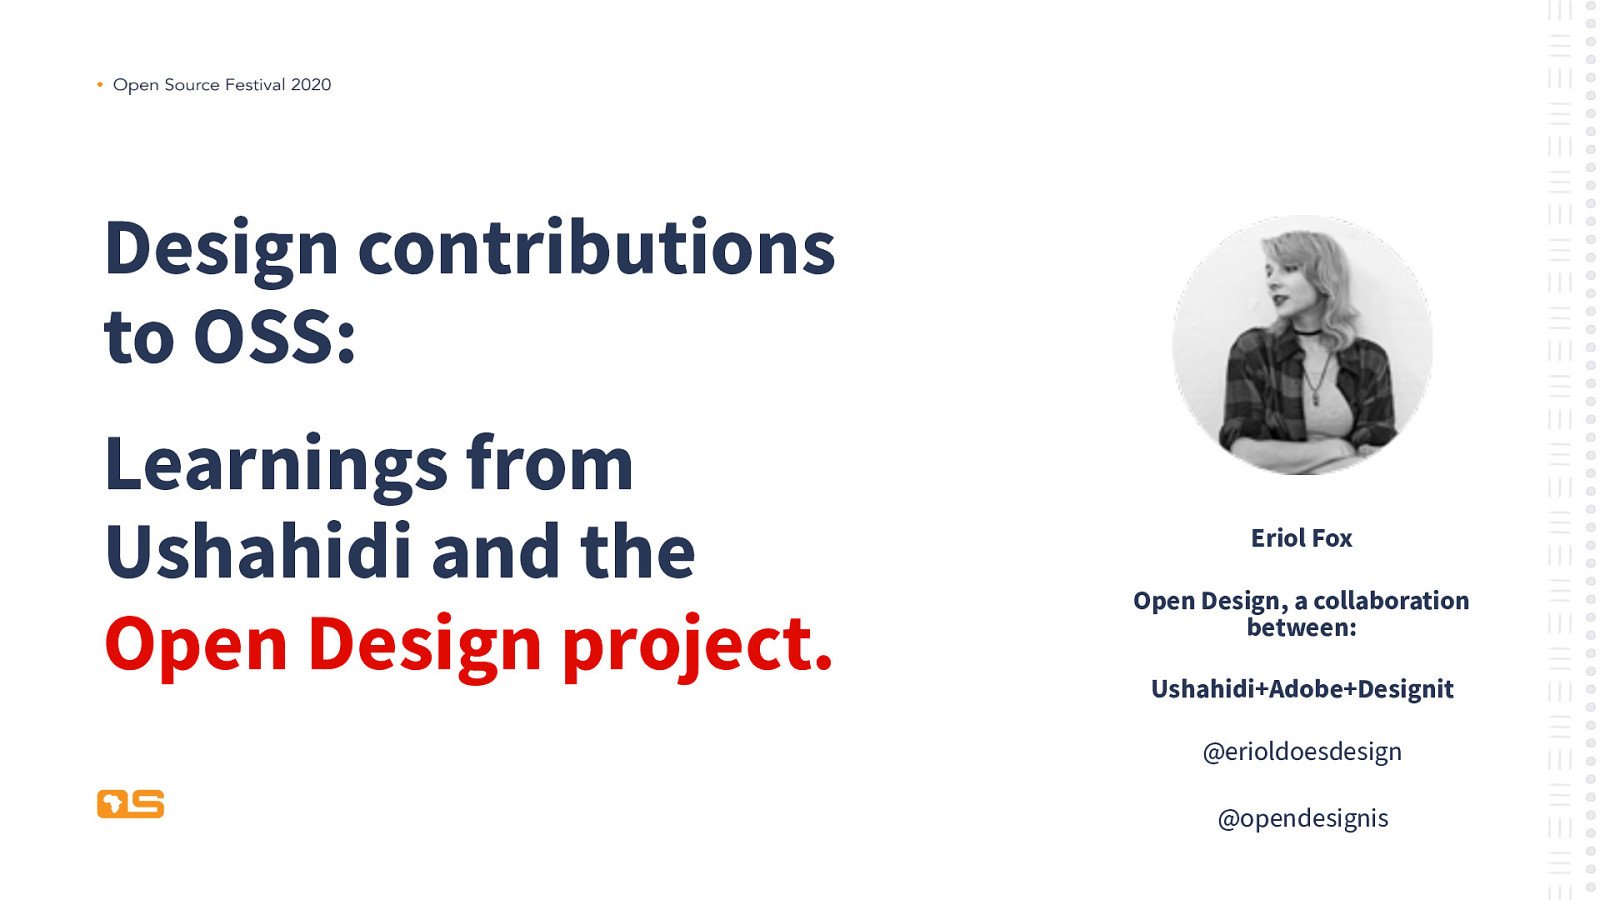 Design contributions to OSS: Learnings from Ushahidi and the Open Design project.